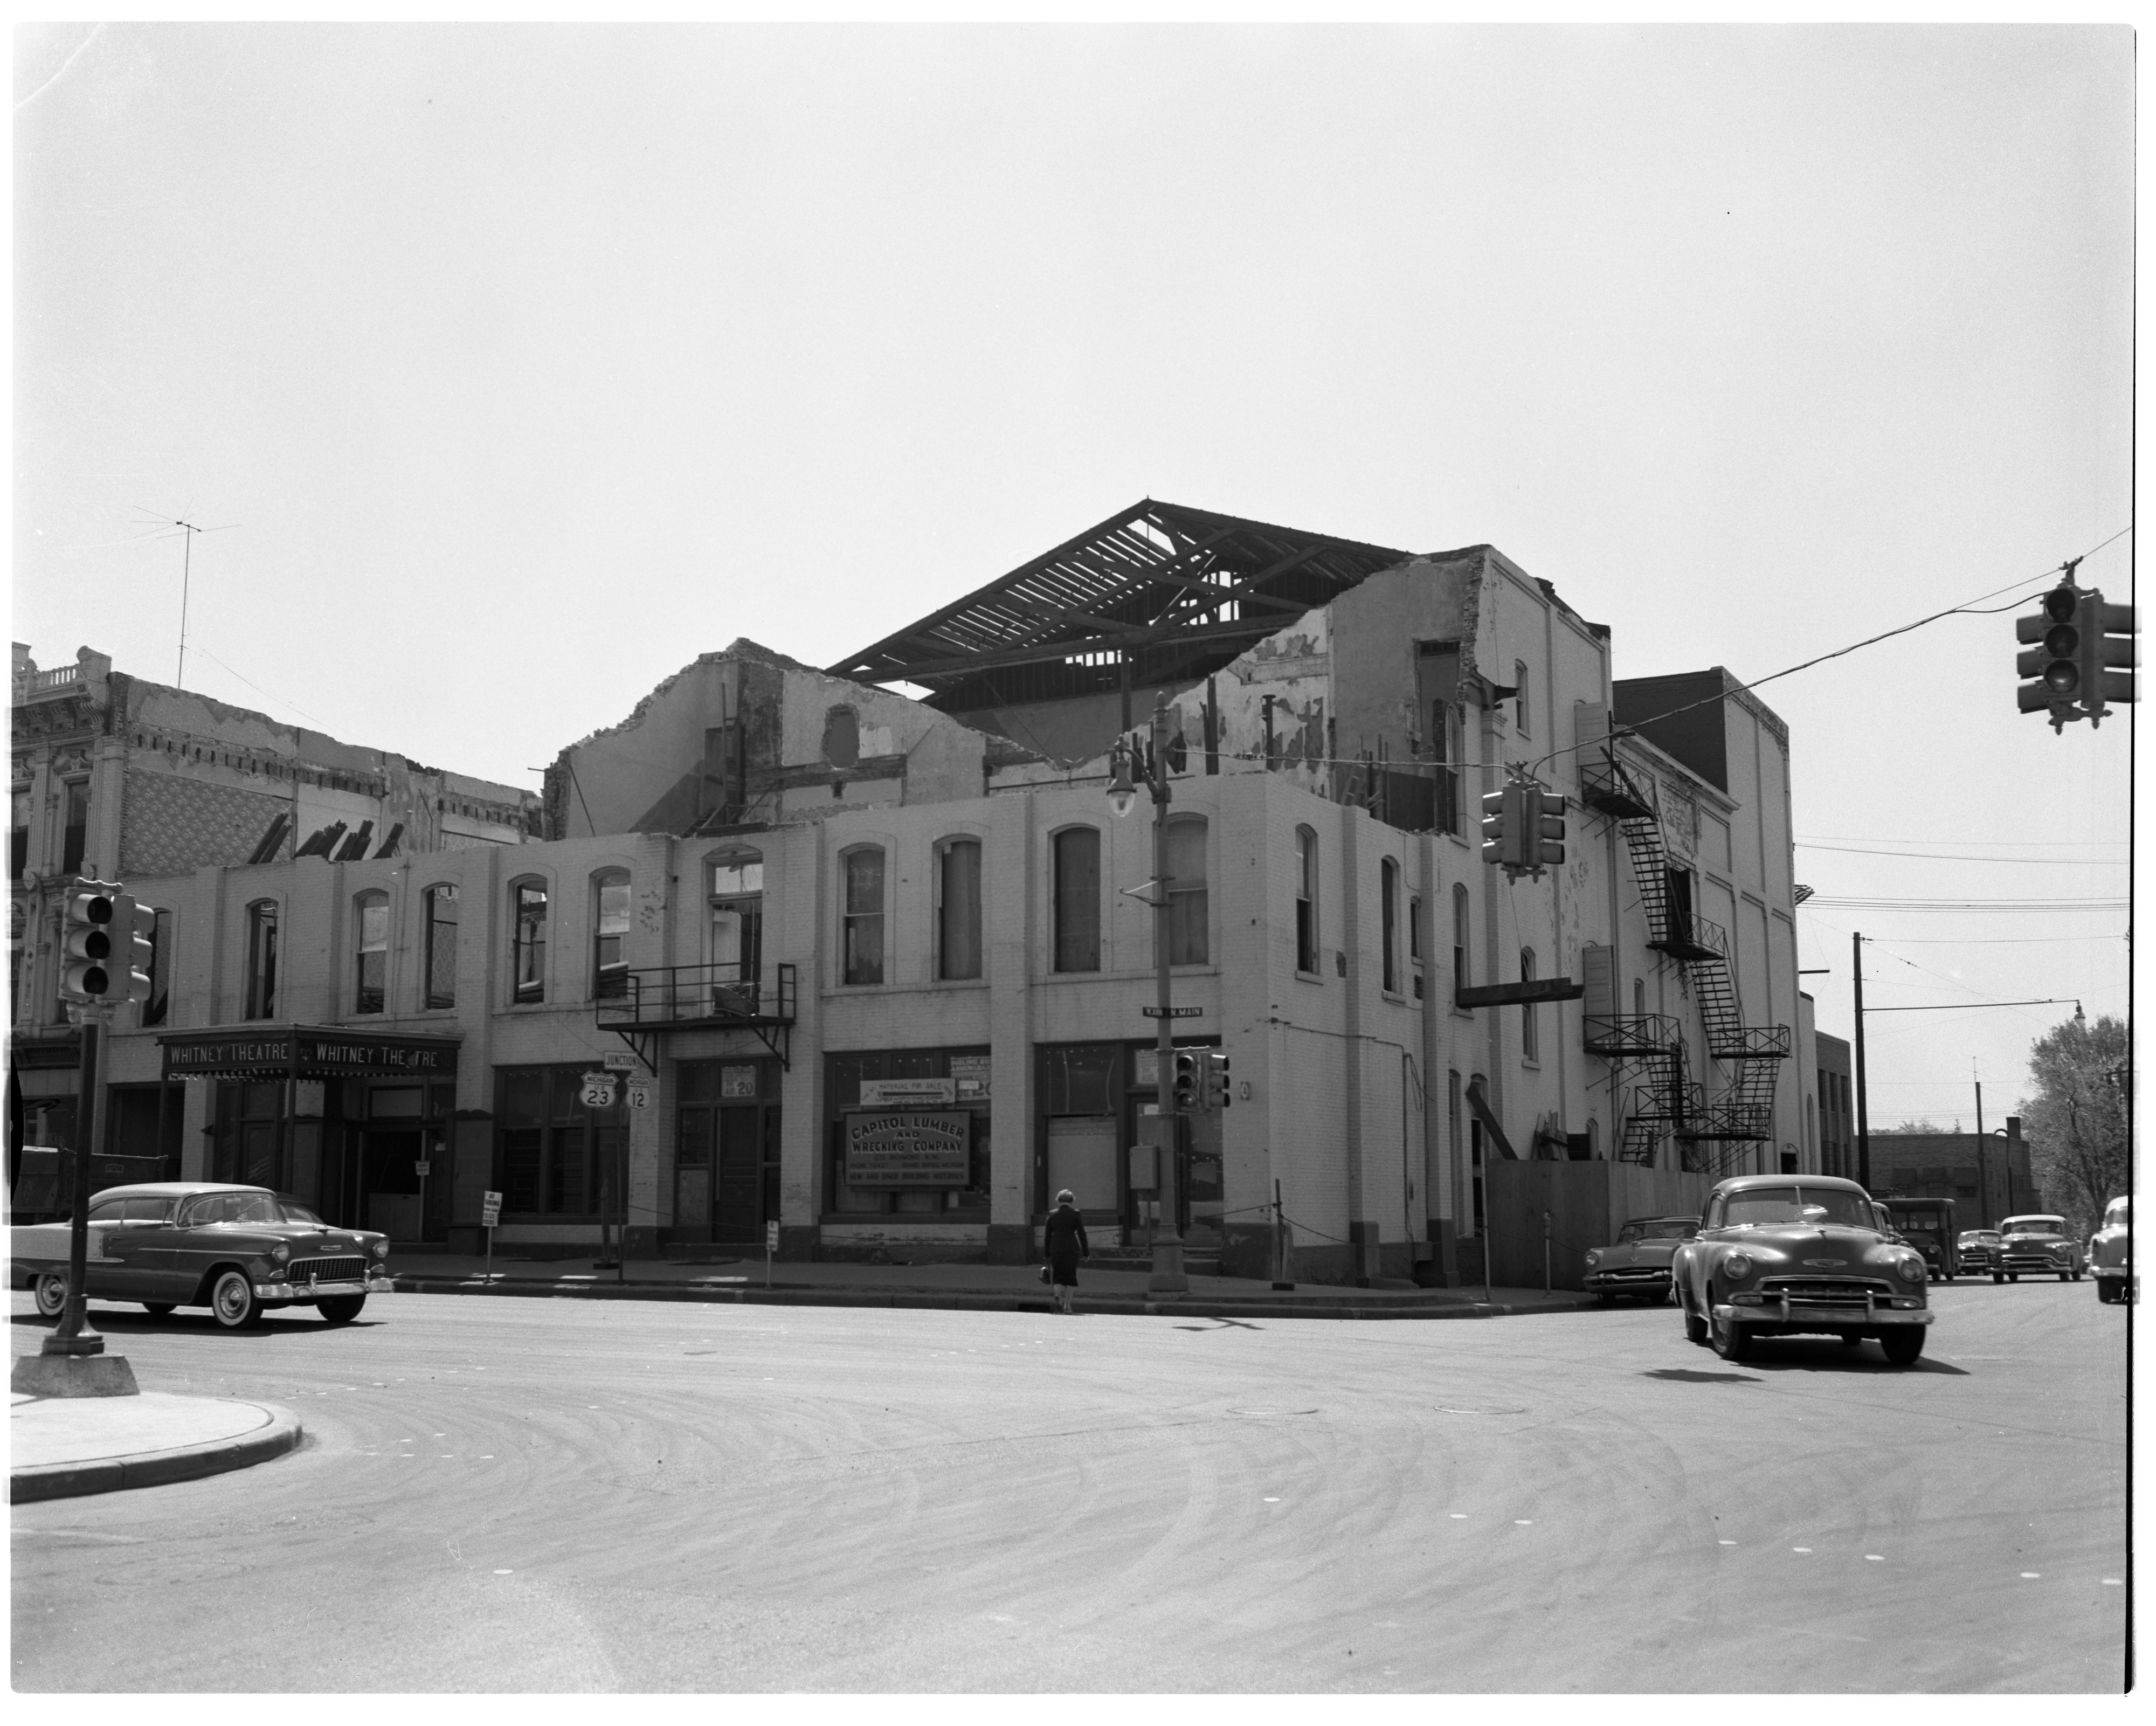 Whitney Theater being torn down, May 1955 image